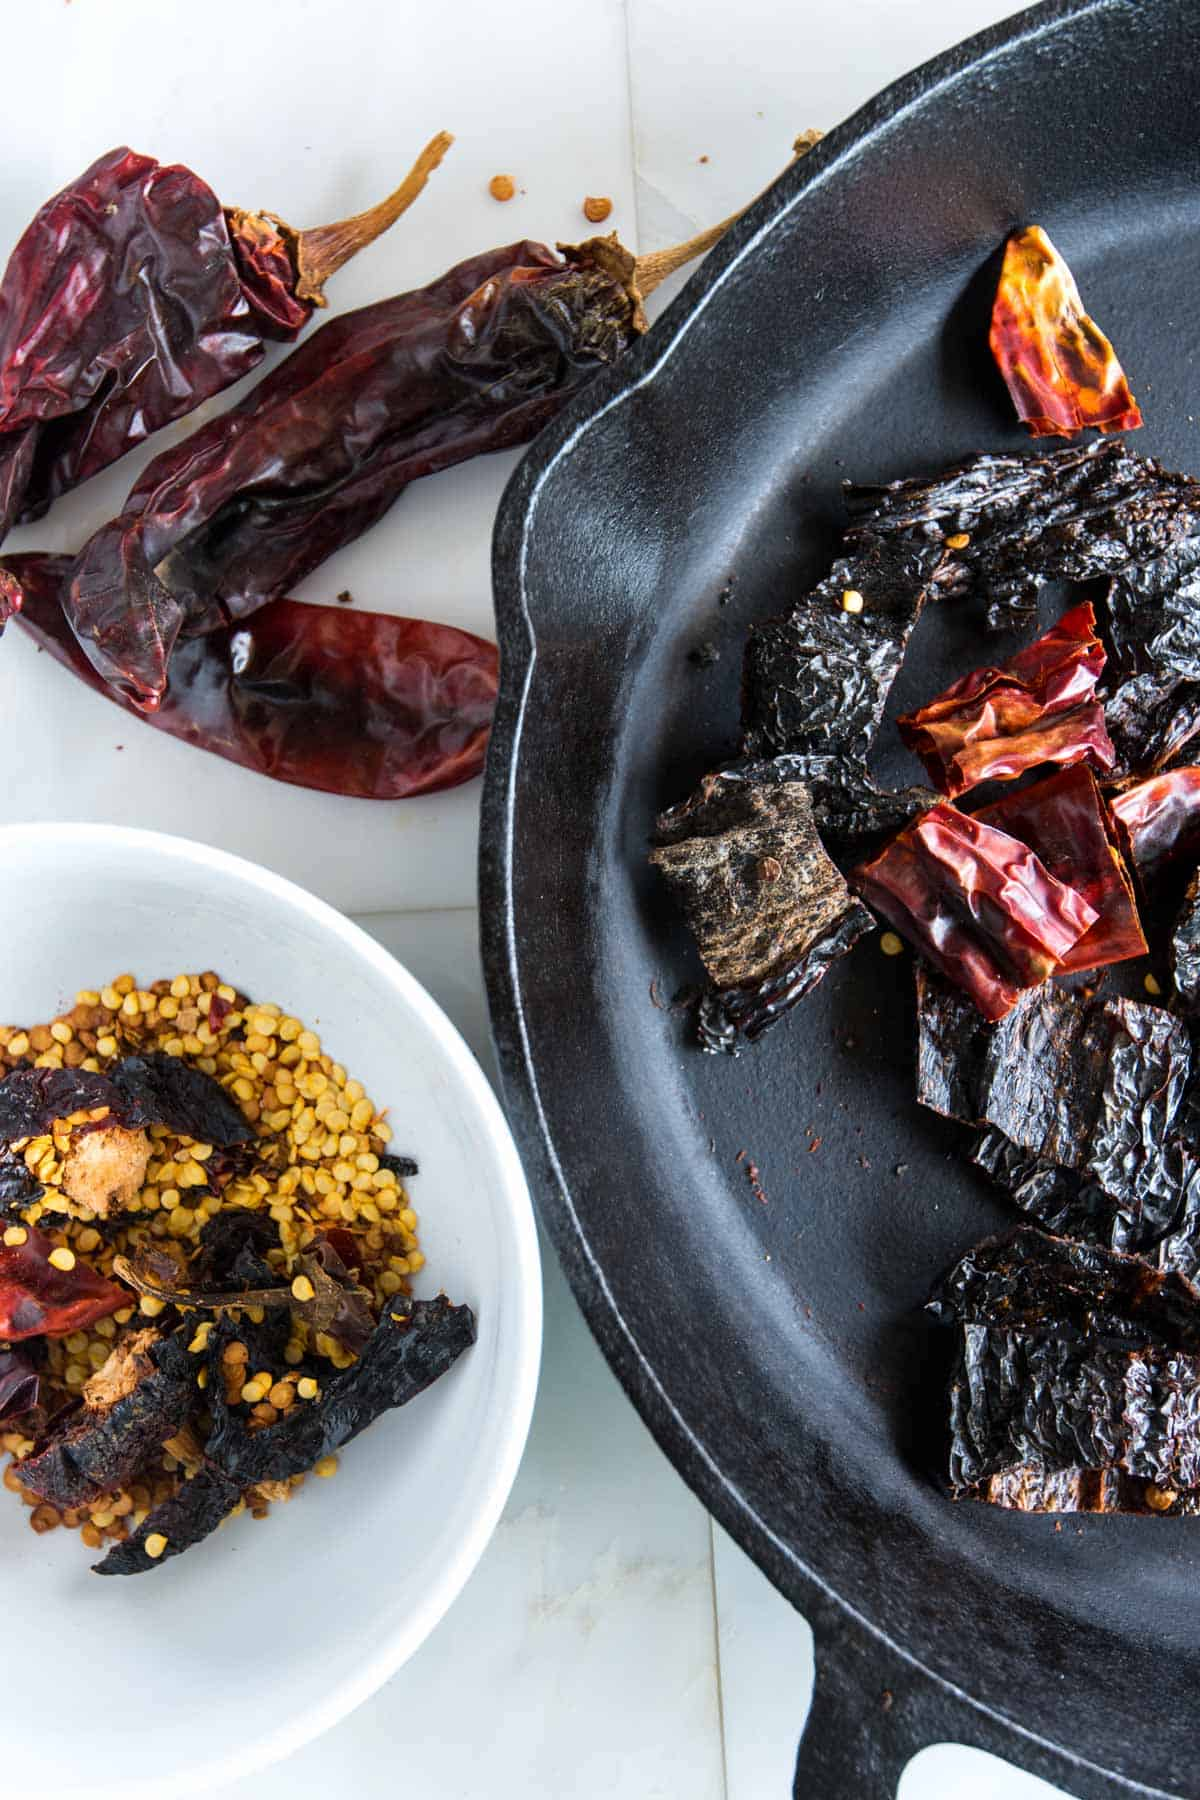 There's three simple steps for preparing the dried chiles